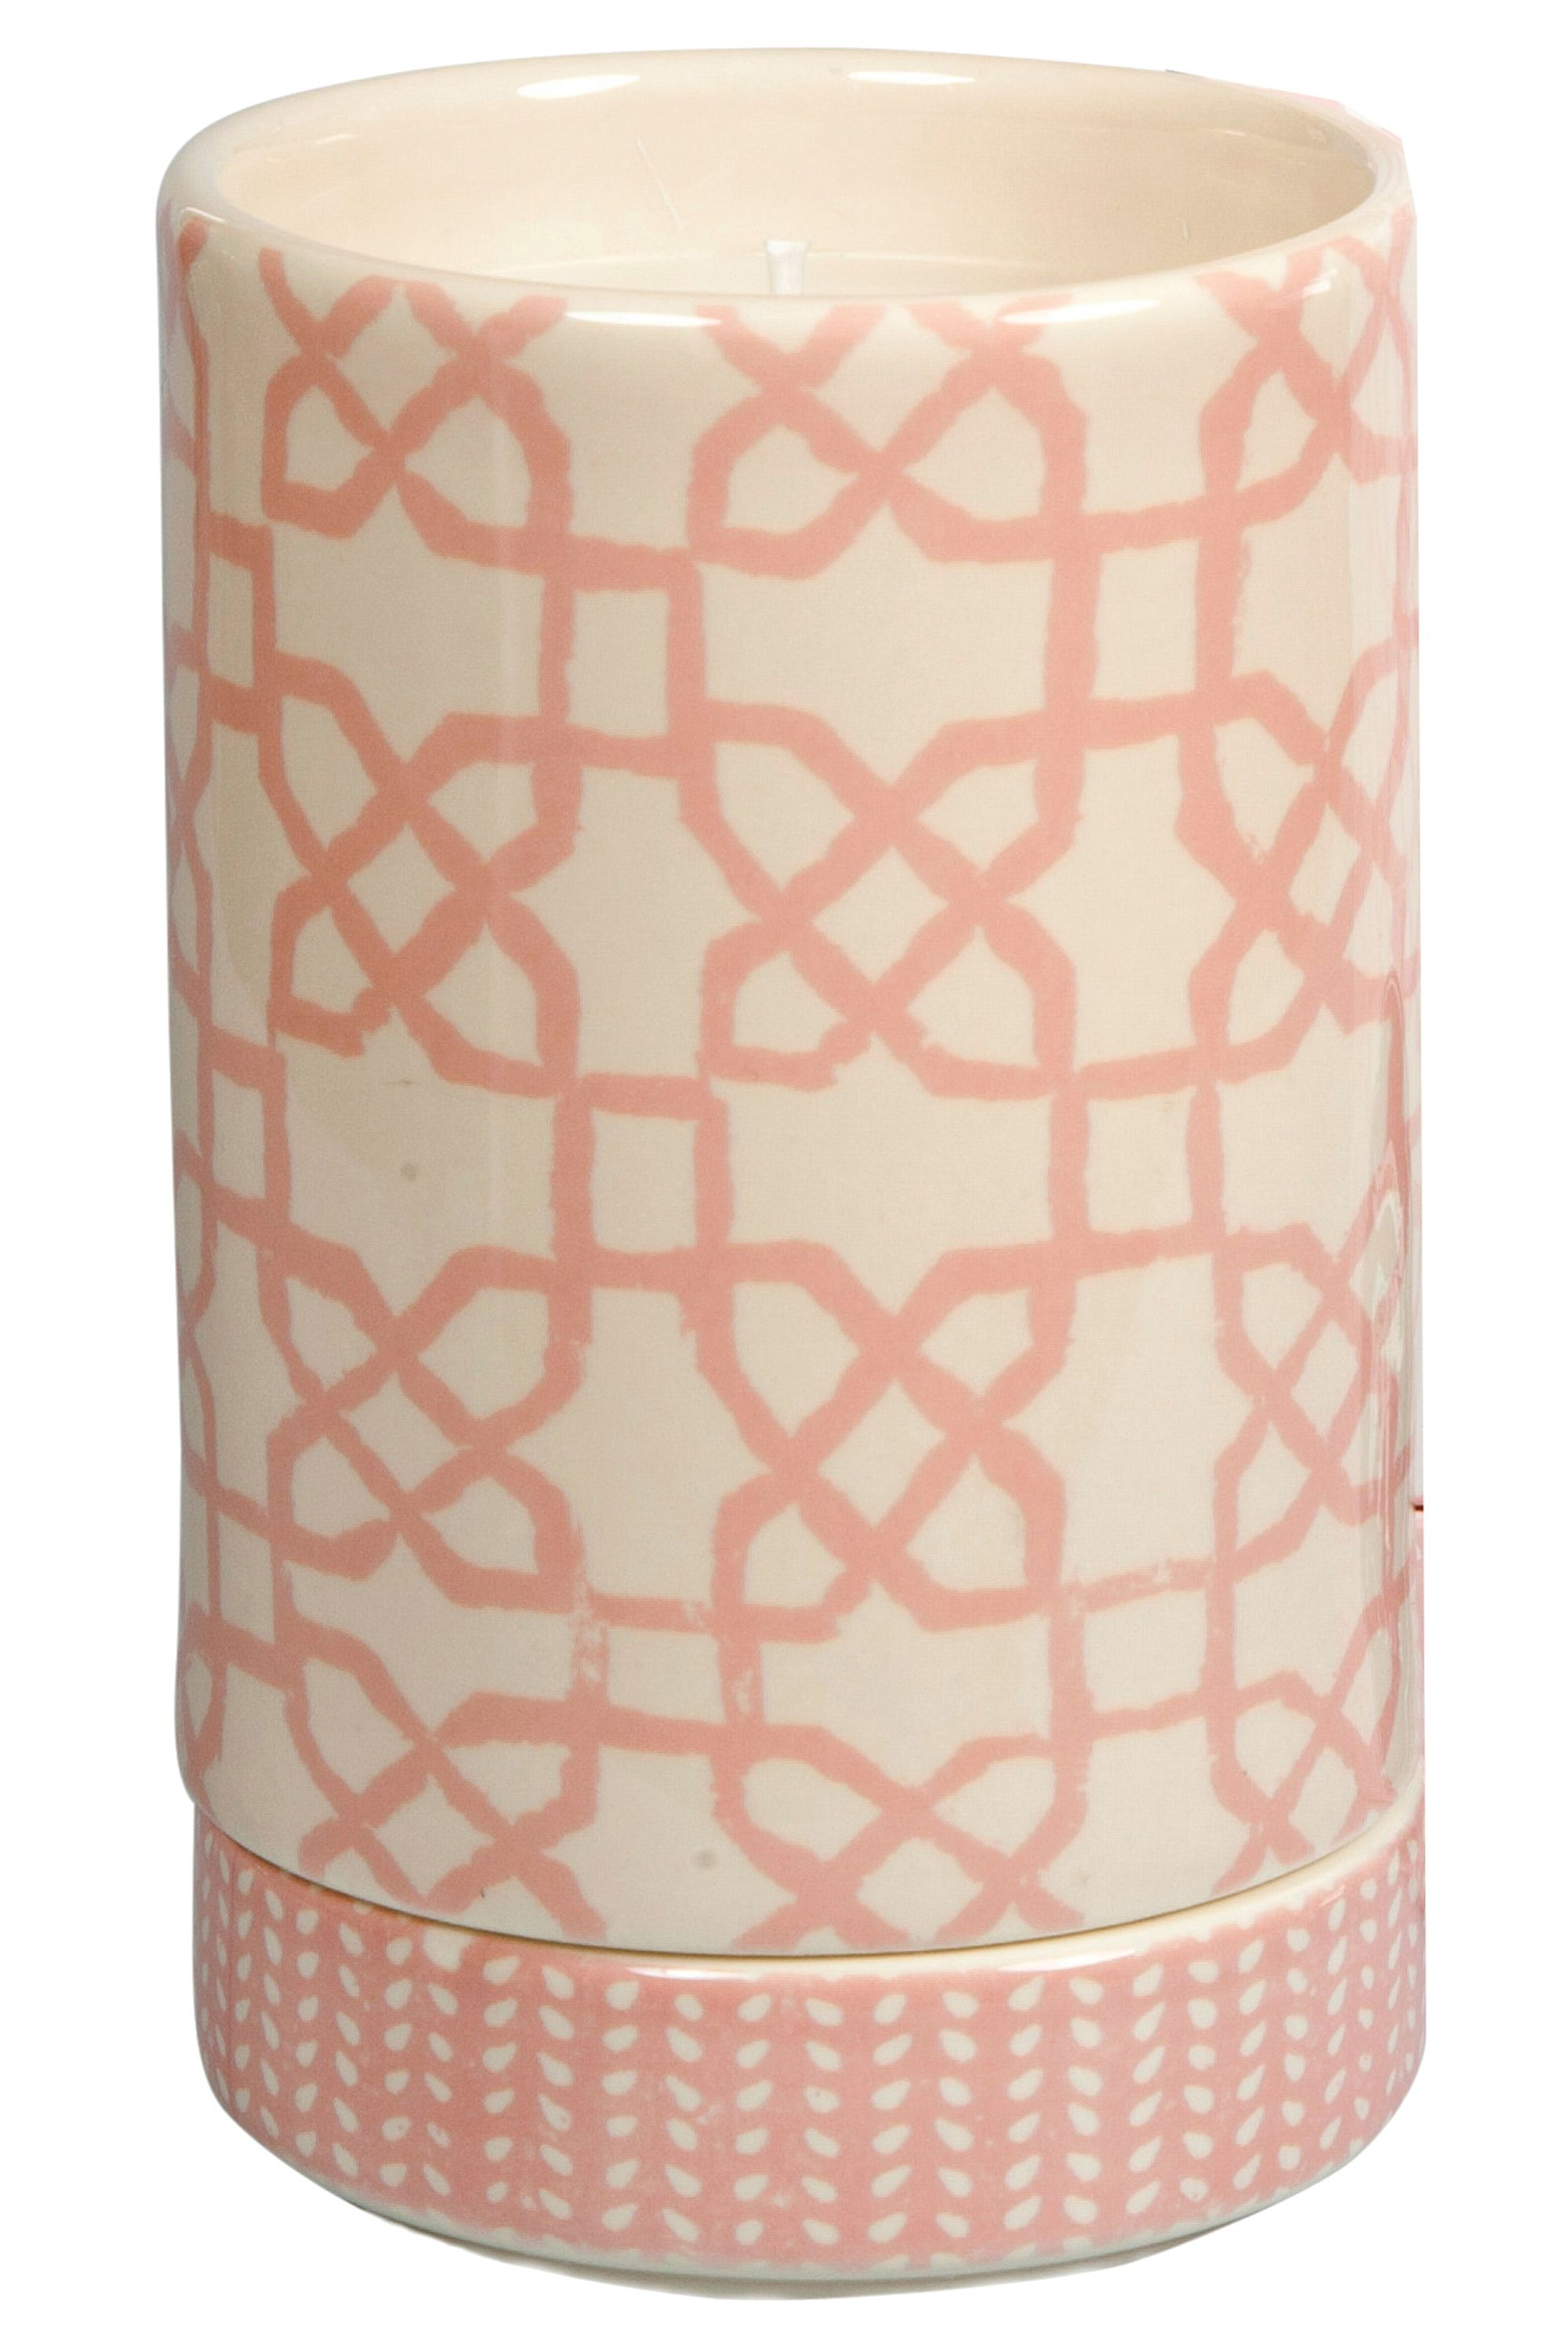 "<strong>Tocca</strong> Pondicherry John Robshaw Collection Candle, $60, <a target=""_blank"" href=""http://www.tocca.com/collections/beauty-home-fragrance-candela/products/pondicherry-john-robshaw-collection-candle#.VW9NIK1g6K0"">tocca.com</a>."